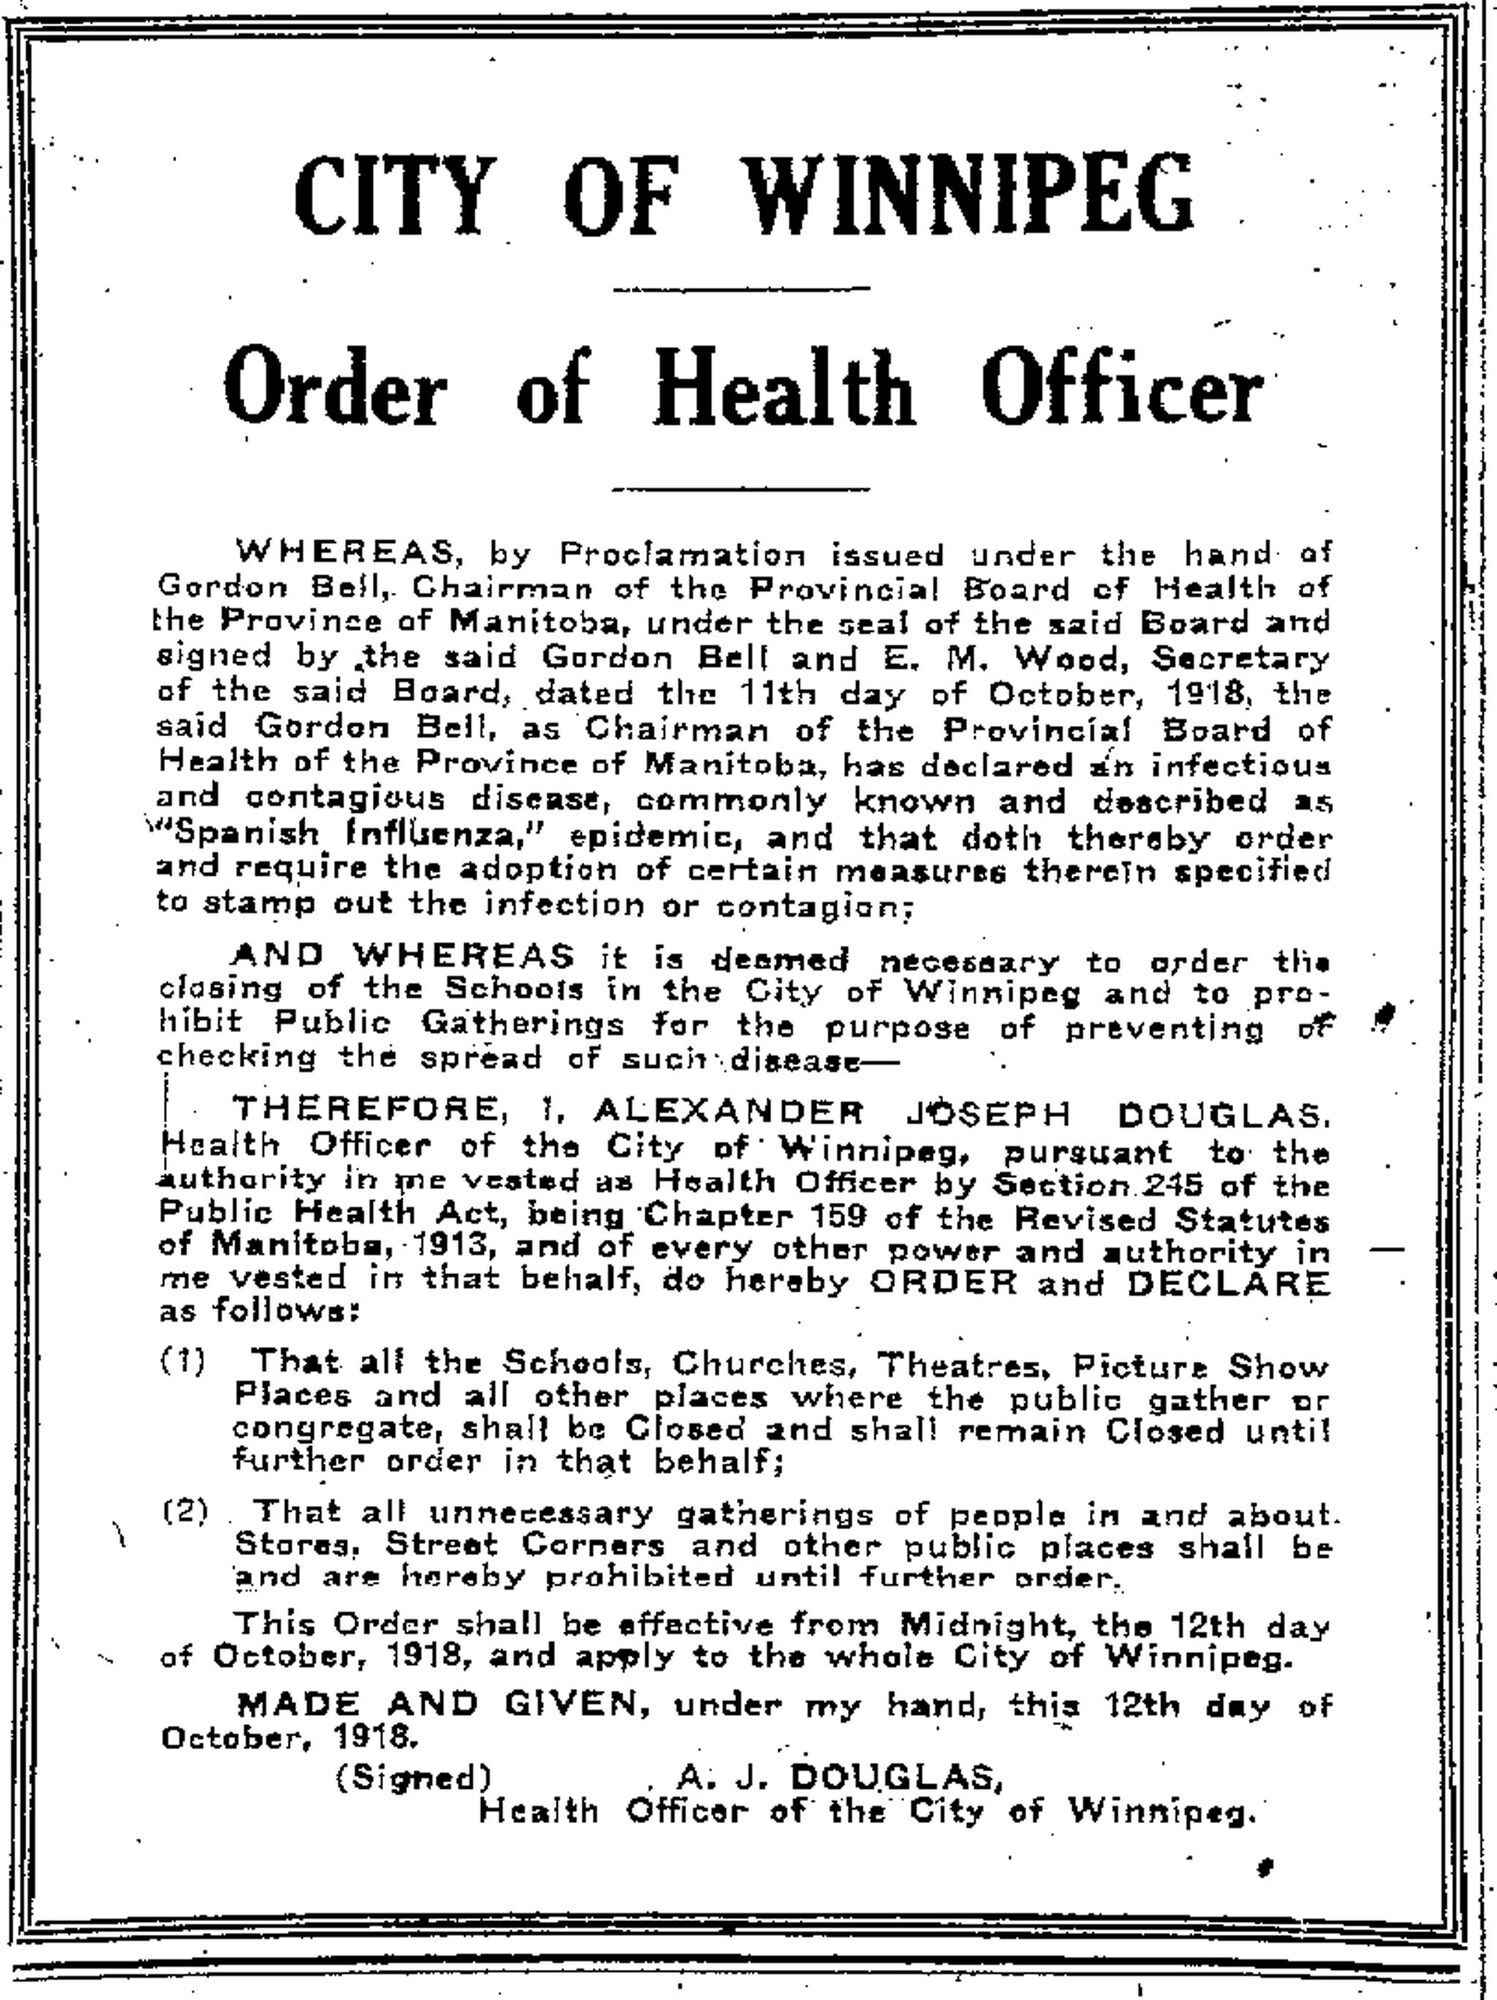 A public order banning public gatherings was published in the Free Press on Oct. 13, 1918.